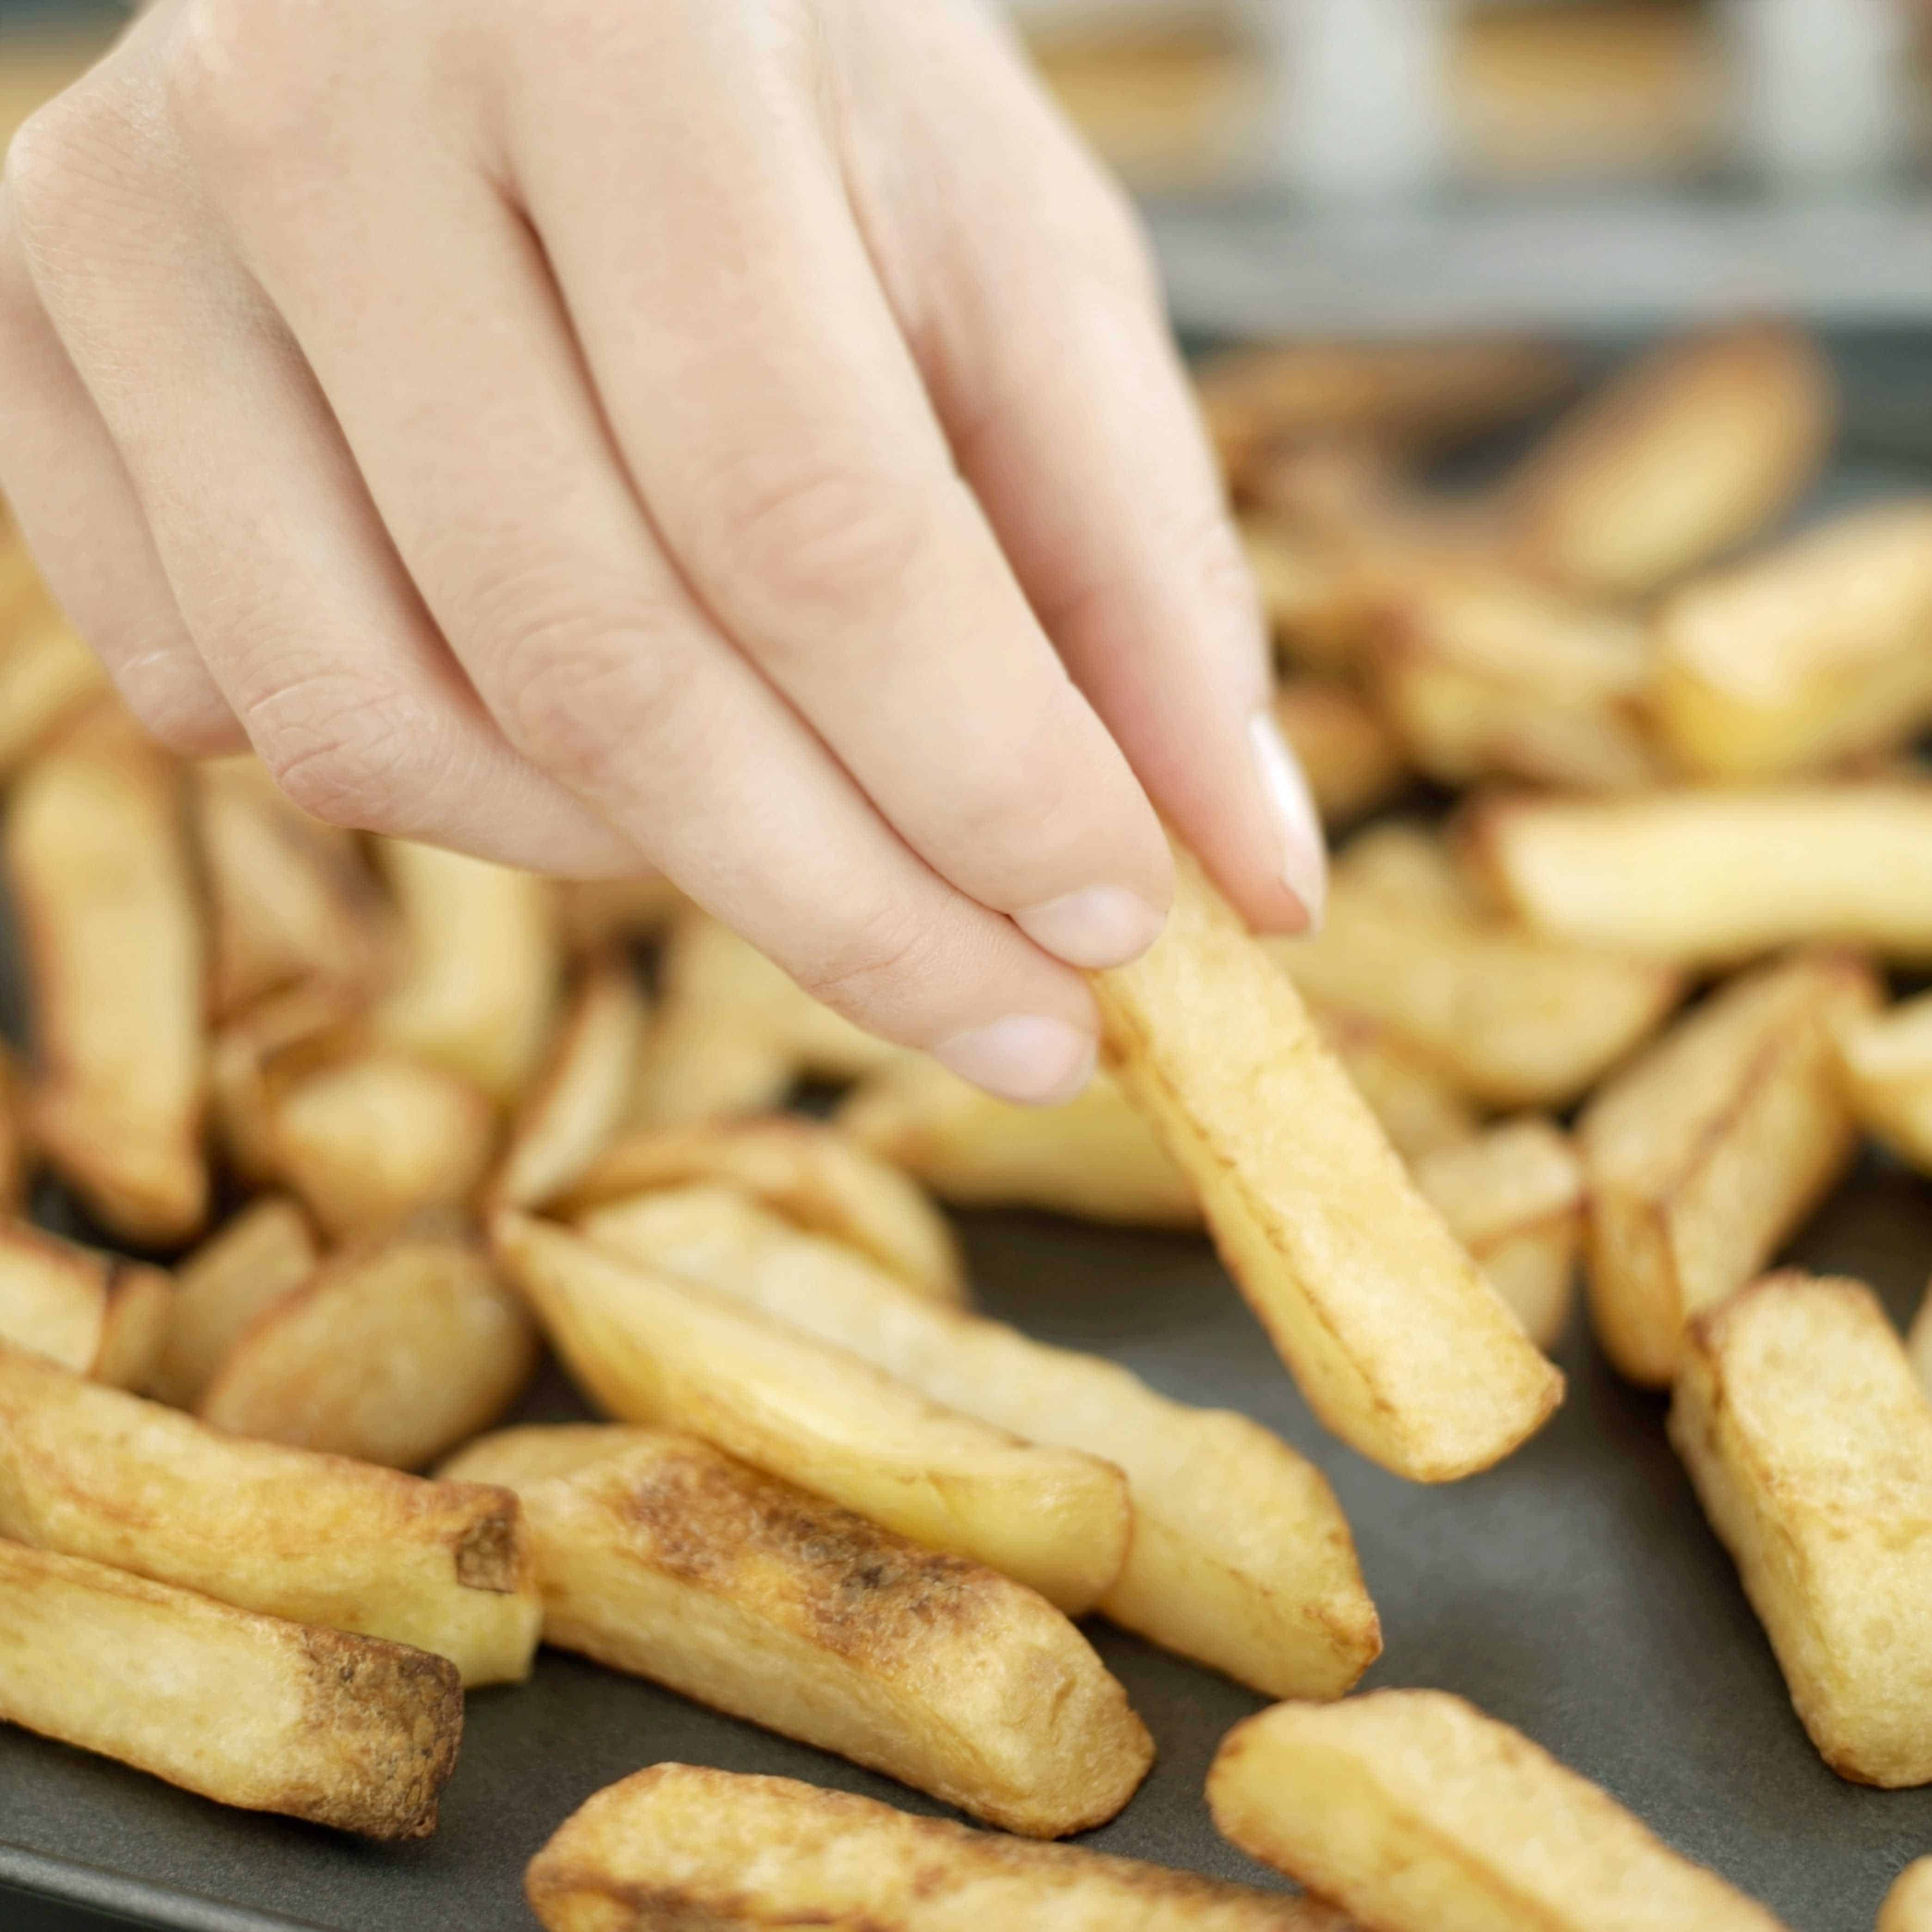 when done right, air fried chips or french fries are amazing.